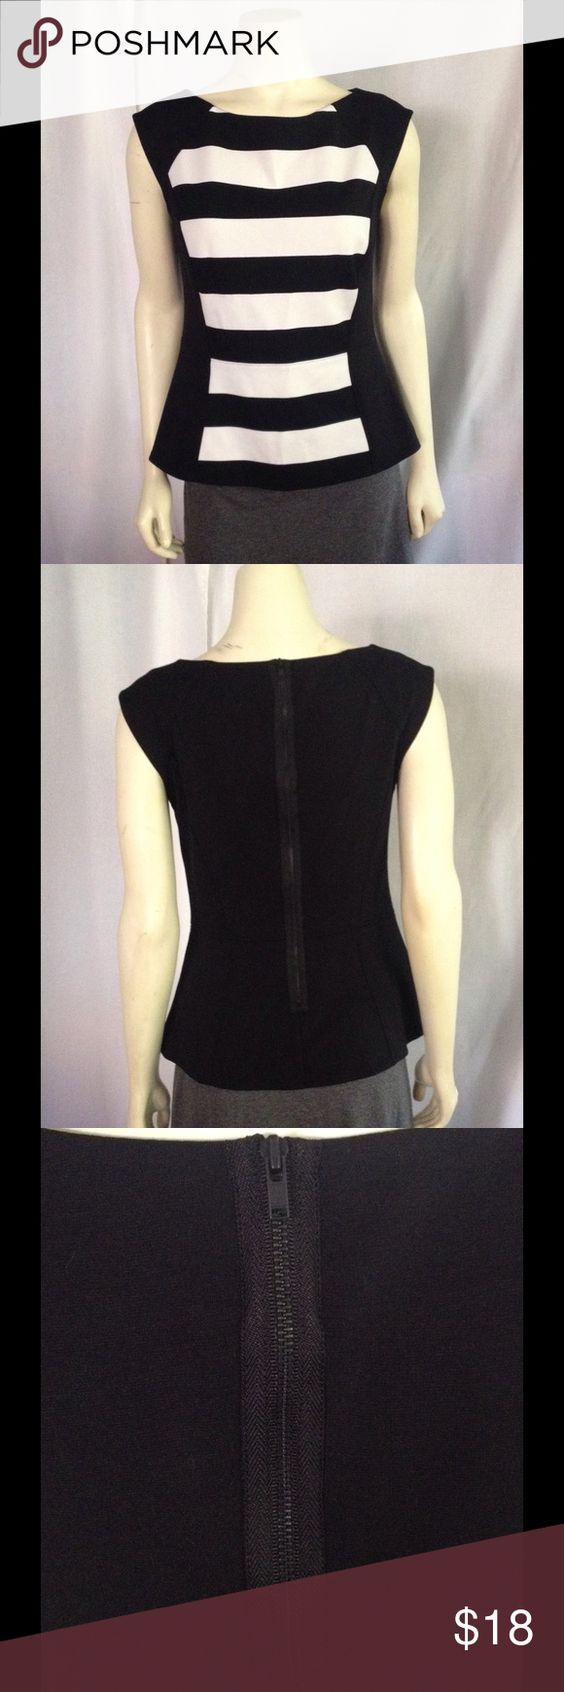 "NWOT Halogen Nordstrom b/w colorblock peplum top S NO TRADES.  New without tags! Classy and nicely tailored, with cap sleeves. Long, chunky black rear zipper closure. Lying flat and unstretched, the measurements are: Bust 18"", Waist 14.5, Bottom hem 20"", Shoulder to hem 21.5"". Happy to Bundle and negotiate - Make me an offer! Halogen Tops"